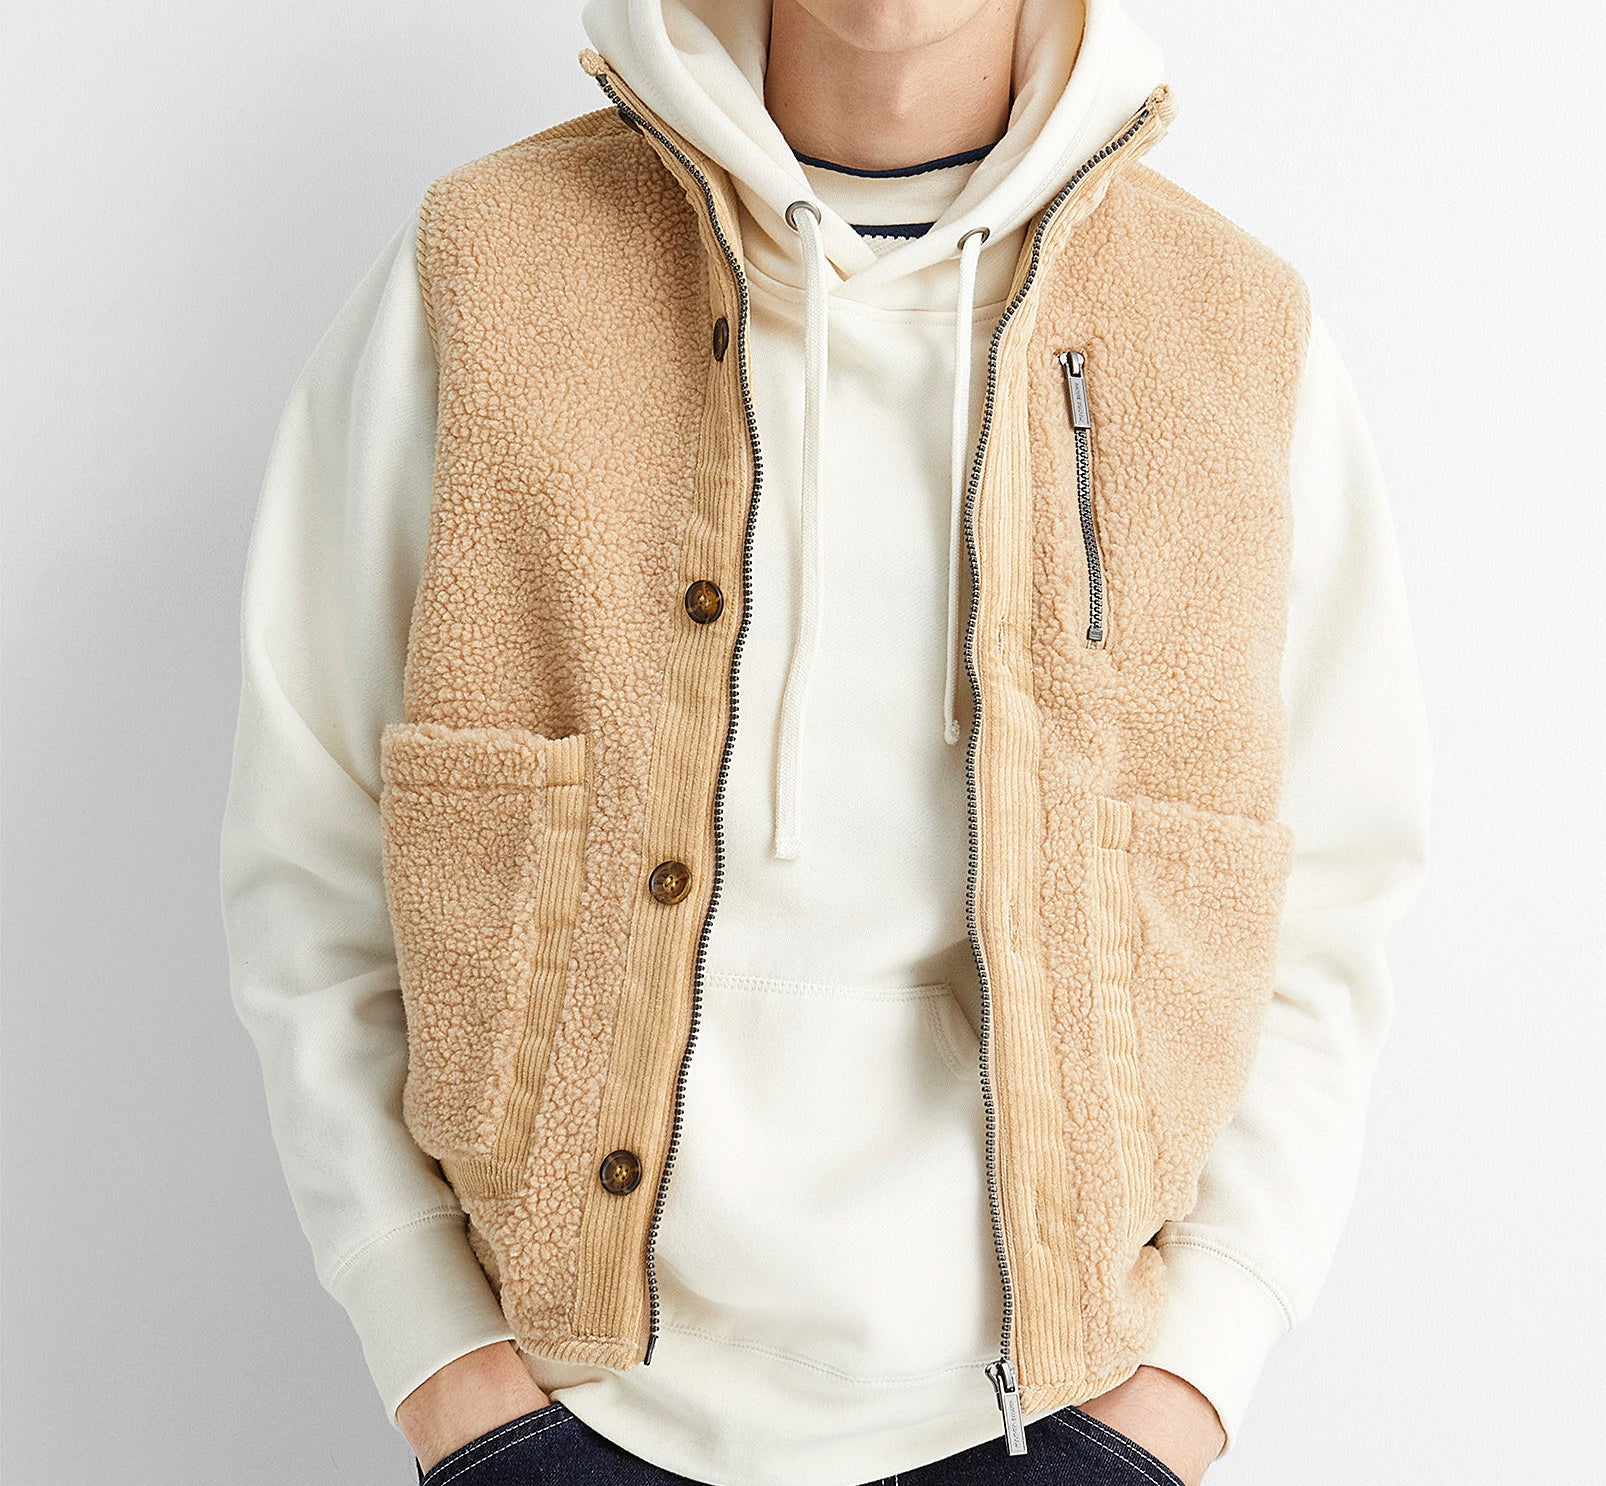 A person wearing the zip-up sherpa vest over a hoodie